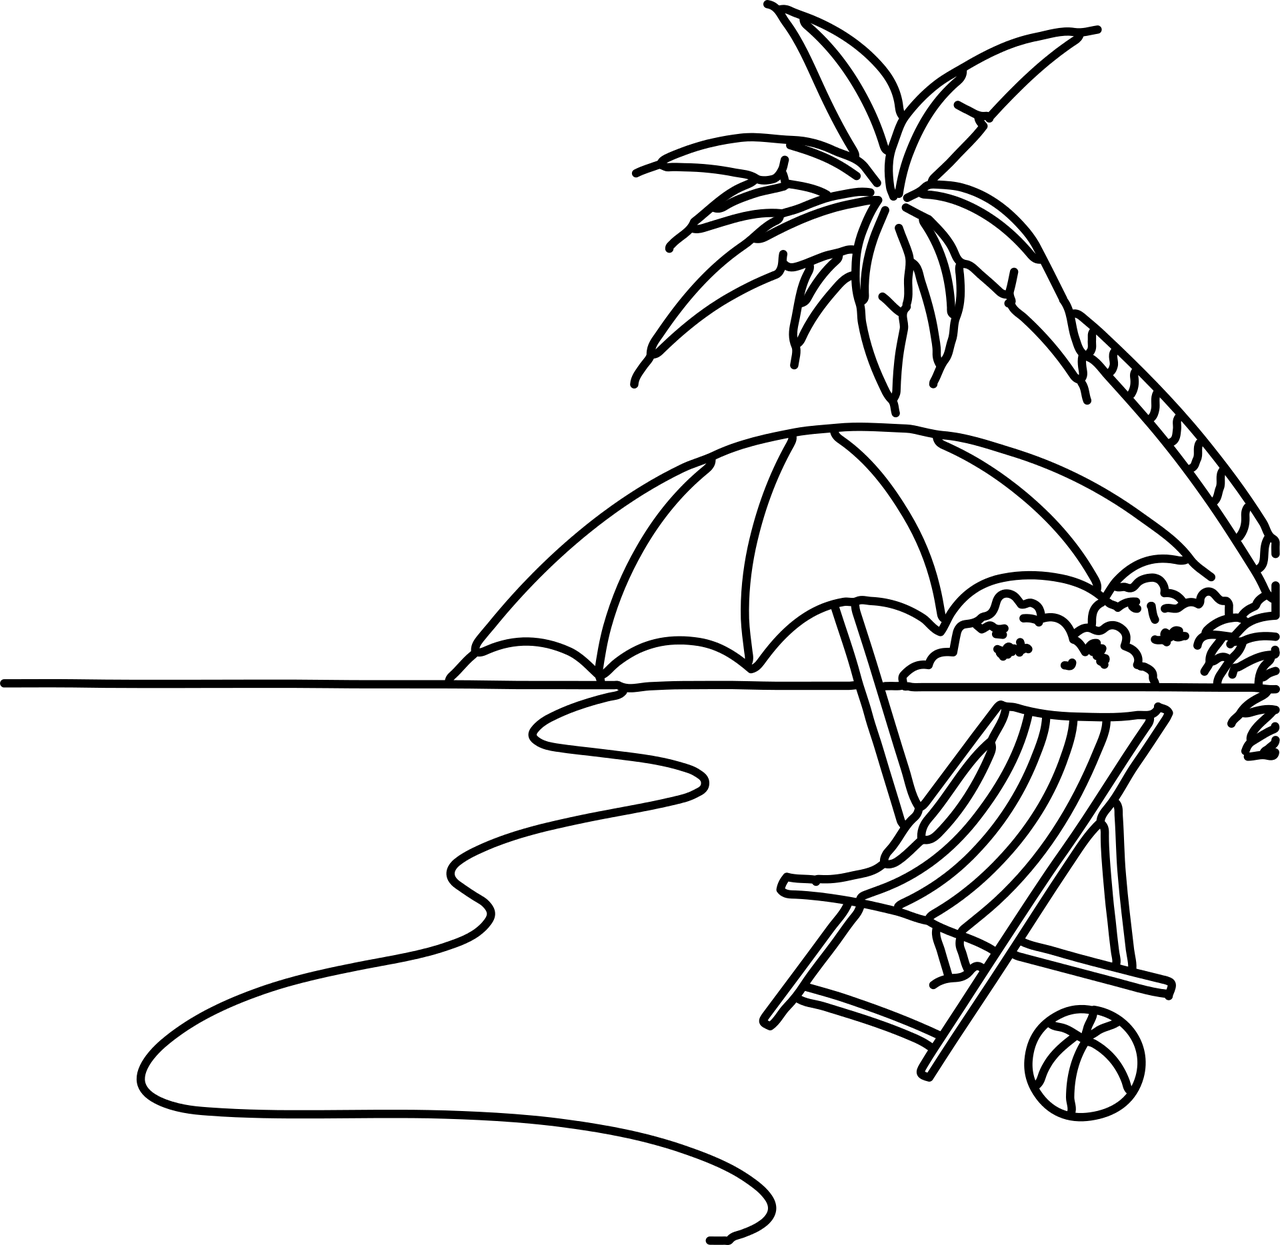 Library Of Seashore Clip Art Library Download Black And